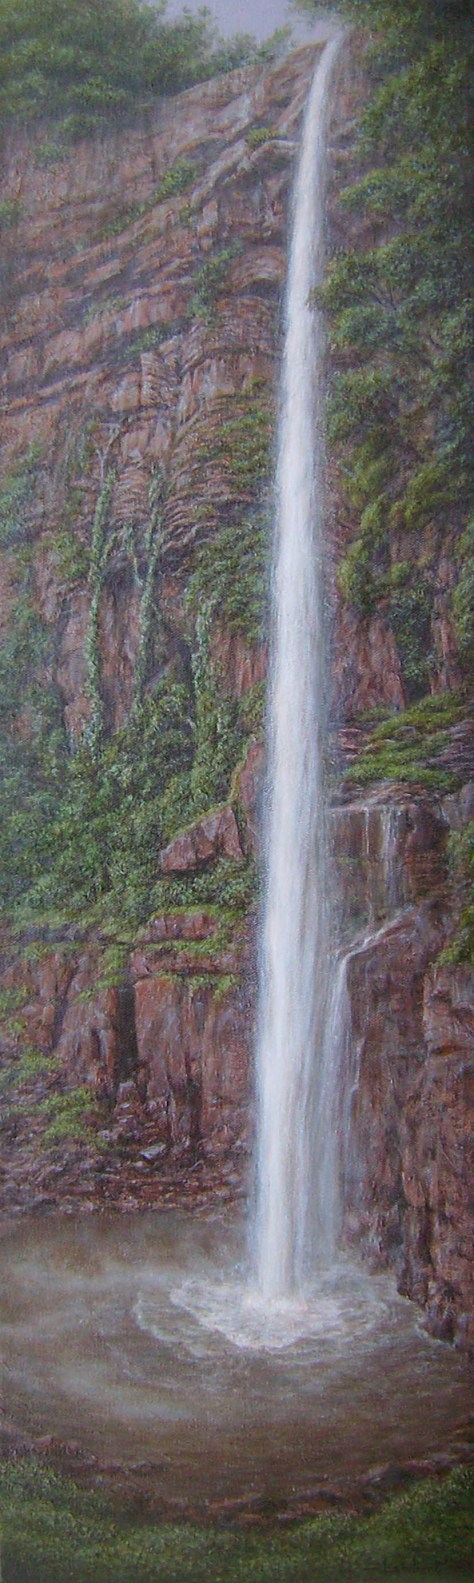 Waterfall, Oil on canvas:51.5 x 180 cm. Available from: www.coetzeeartgalleries.co.za